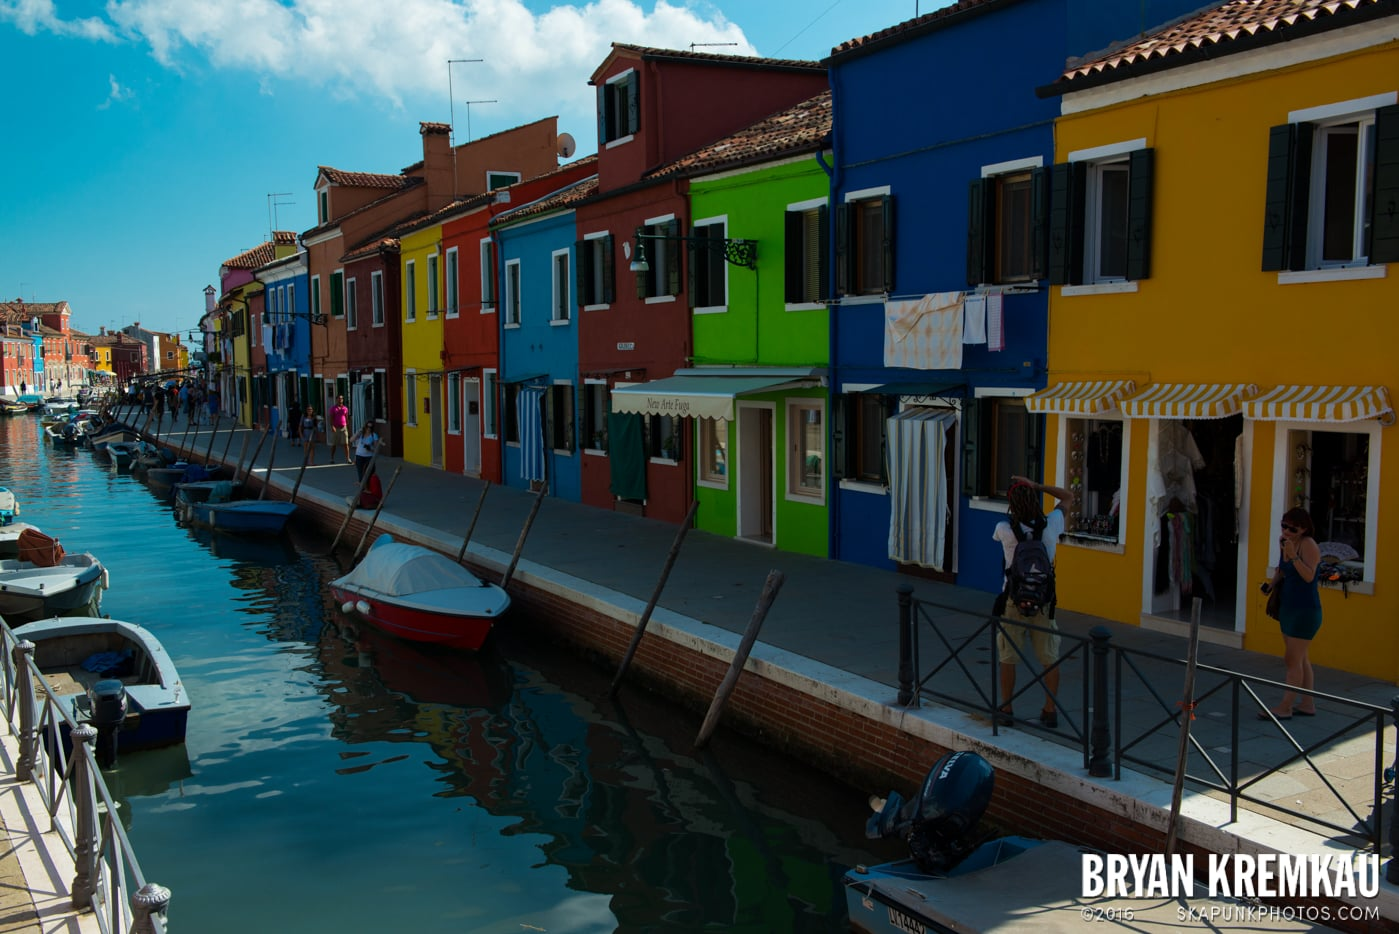 Italy Vacation - Day 6: Murano, Burano, Venice - 9.14.13 (29)